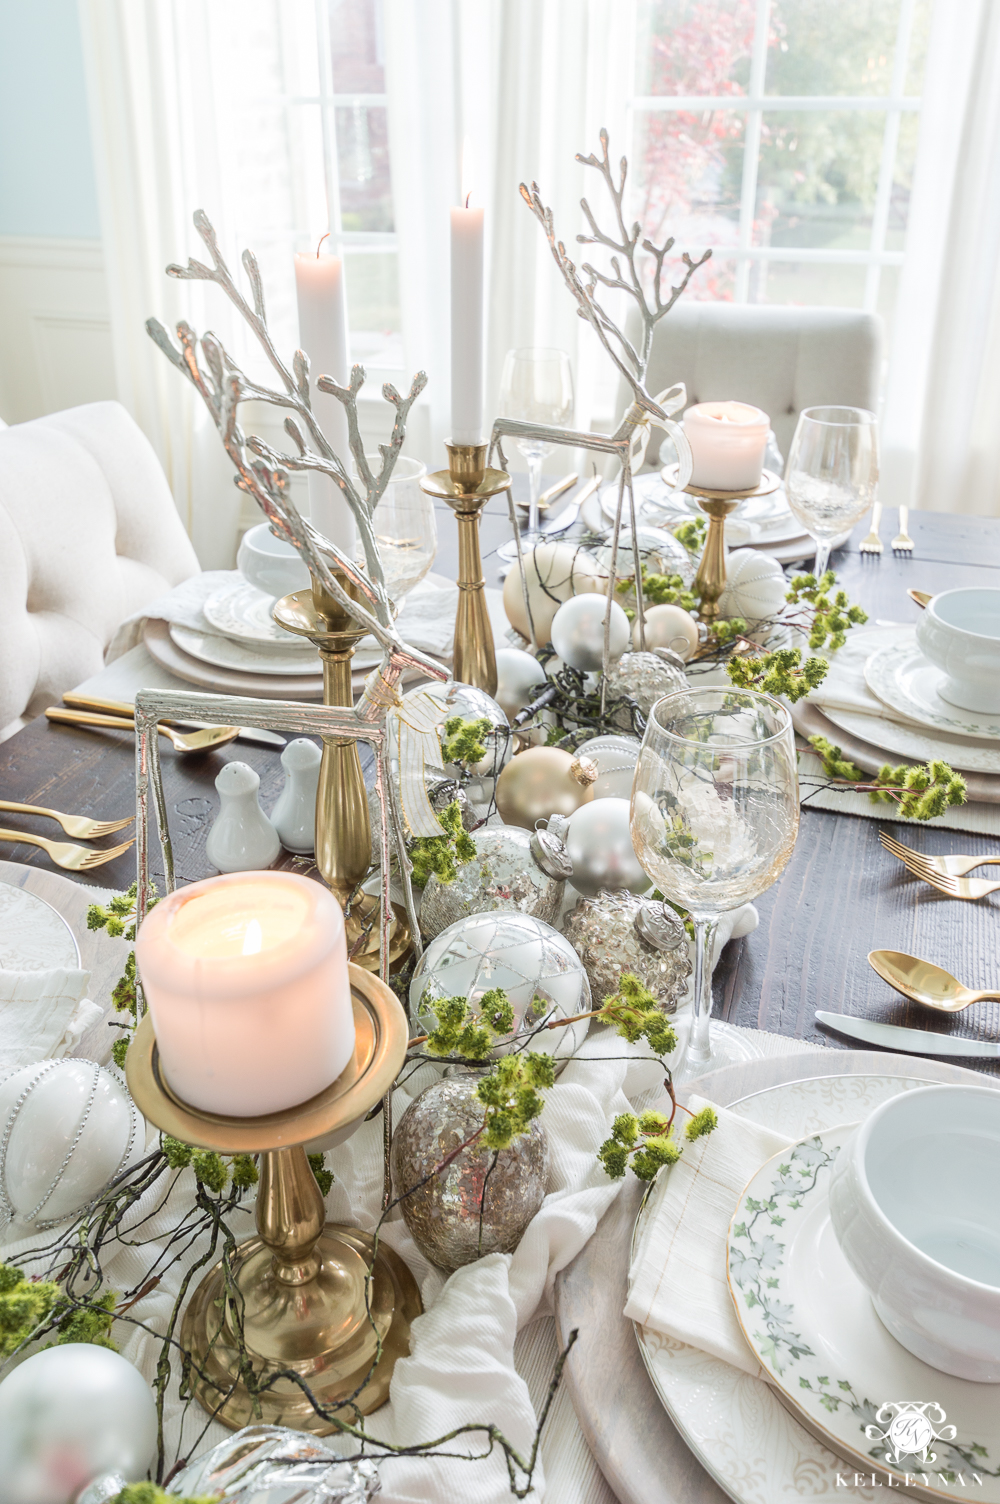 Christmas centerpiece ideas with reindeer, moss, and ornaments